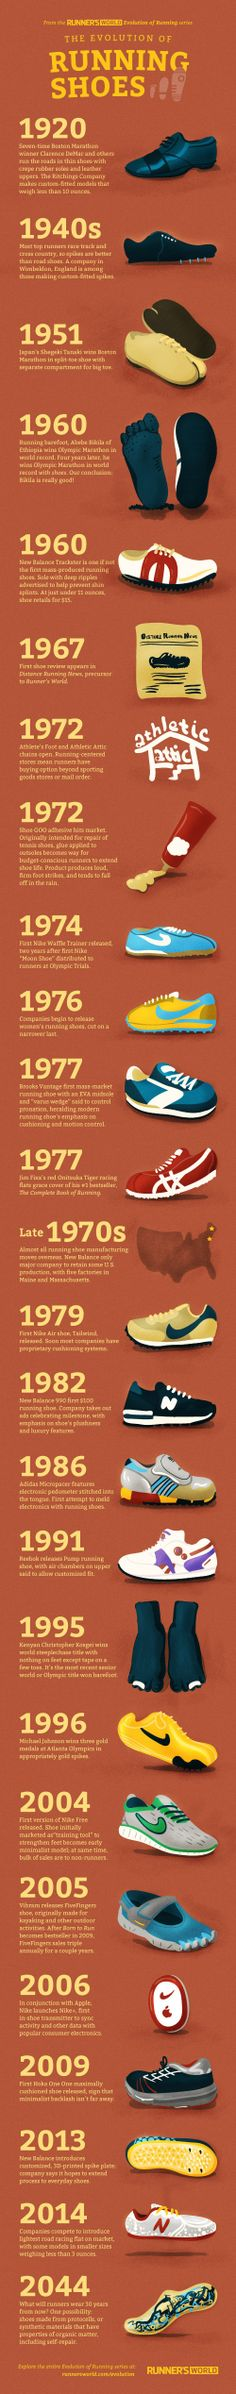 The Evolution of Running Shoes  #RunningShoes #History  #infographic